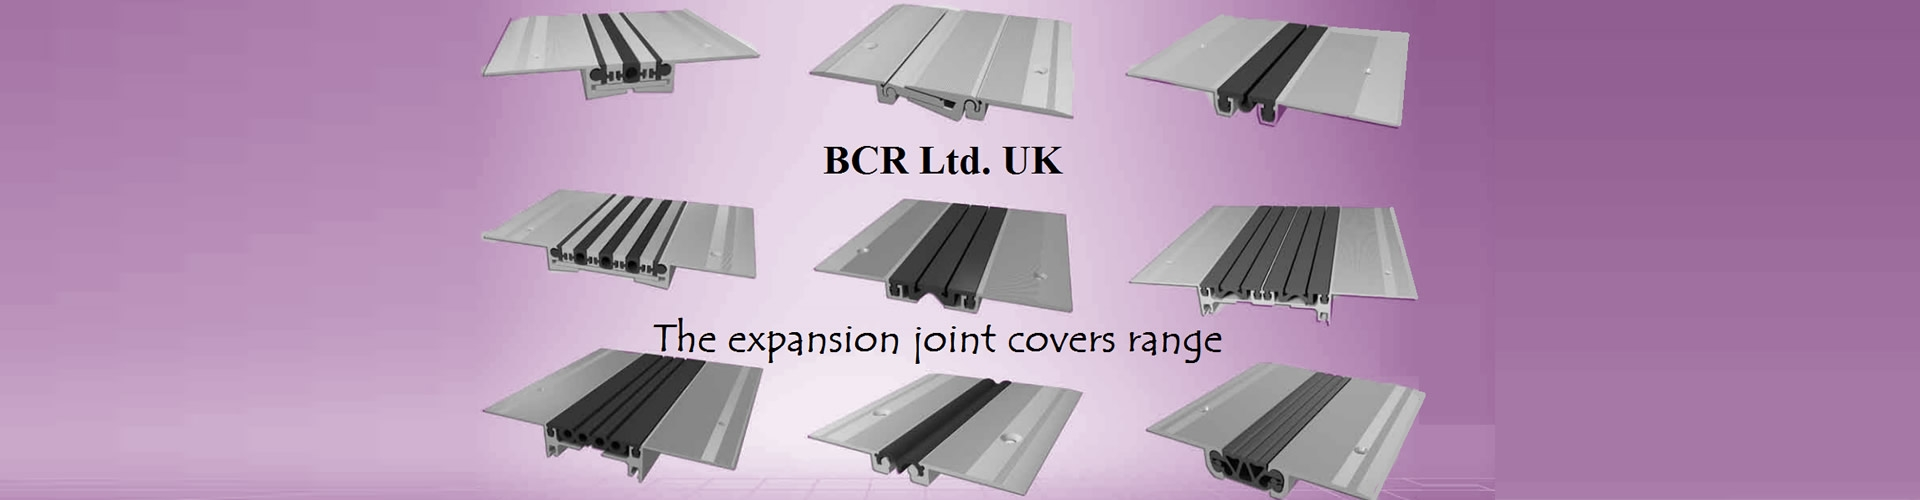 BCR Expansion Joint Cover Range